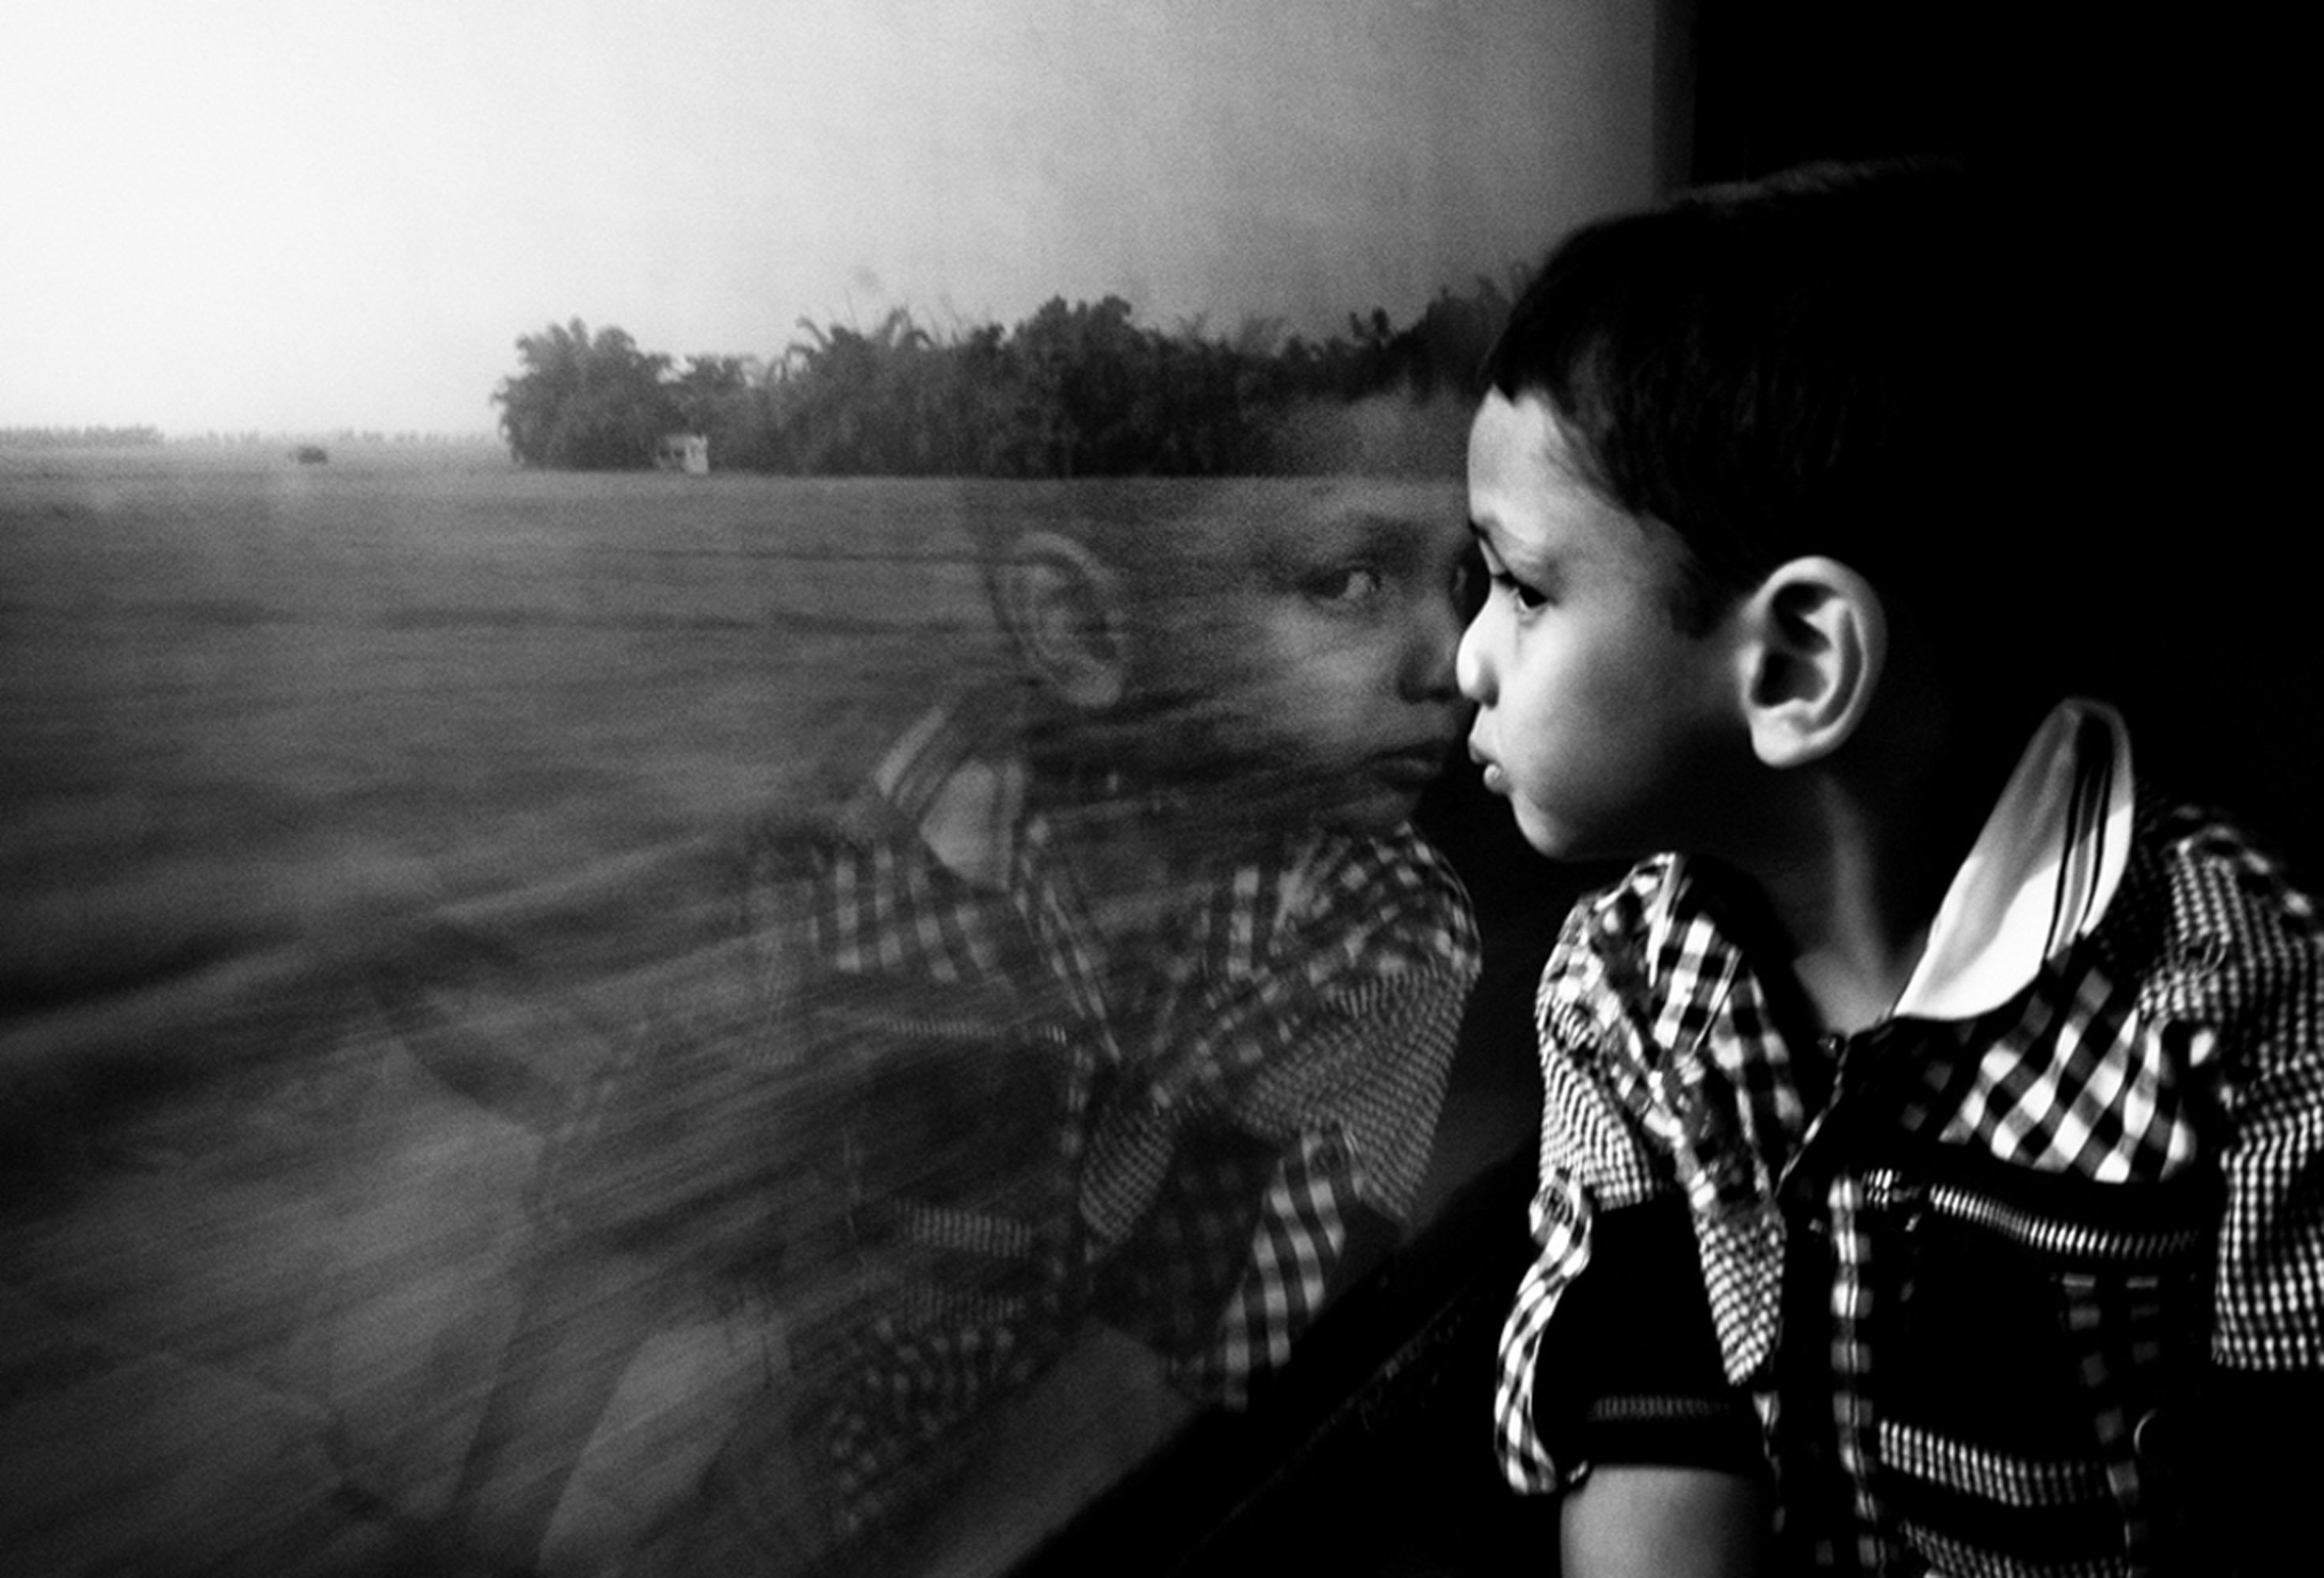 kid in train street photography by swarat ghosh